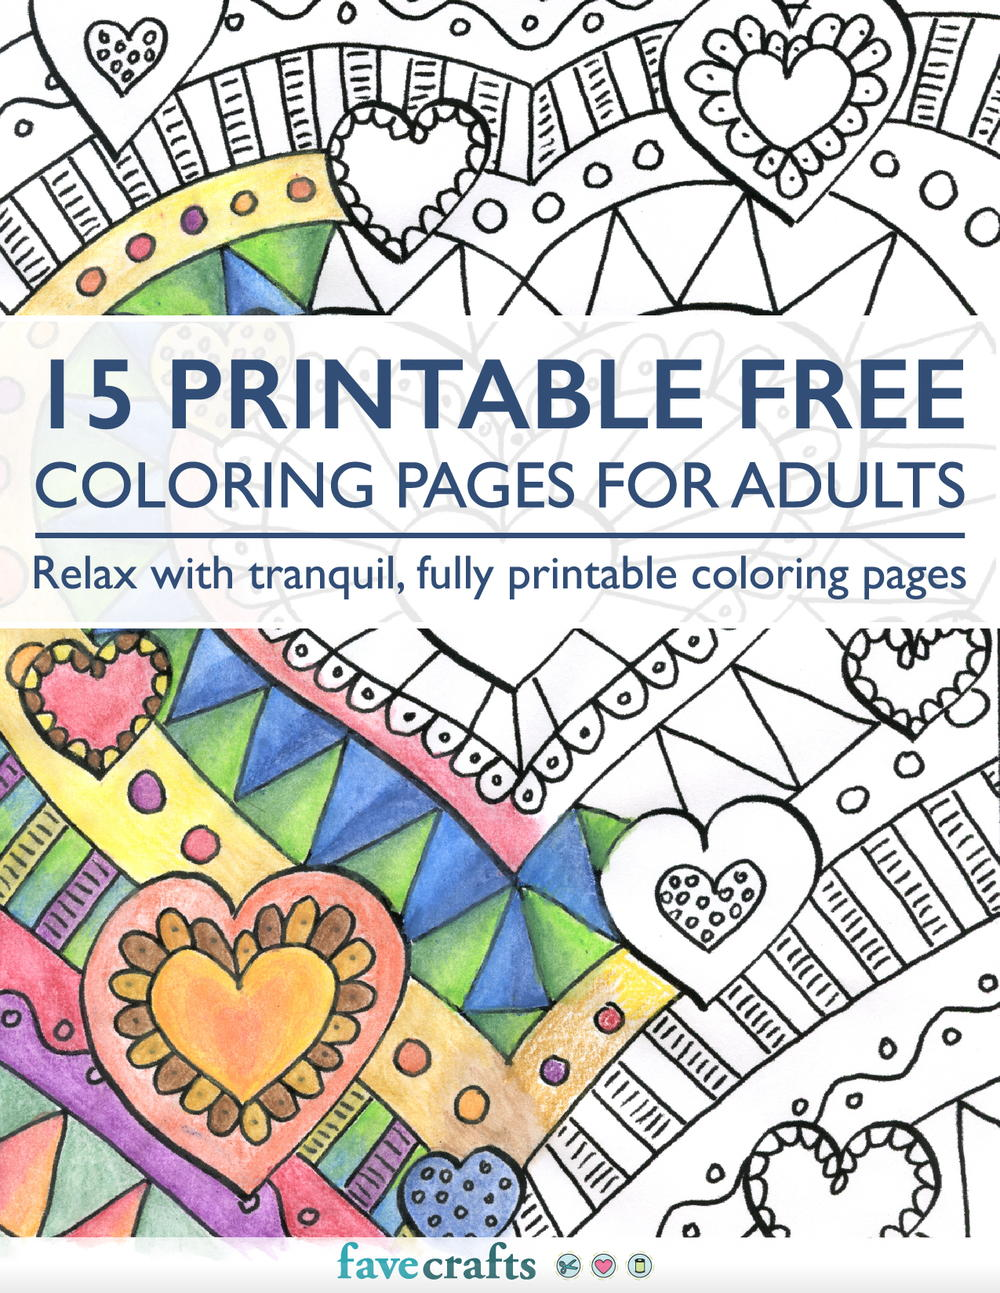 The coloring book e book - 15 Printable Free Coloring Pages For Adults Free Ebook Favecrafts Com